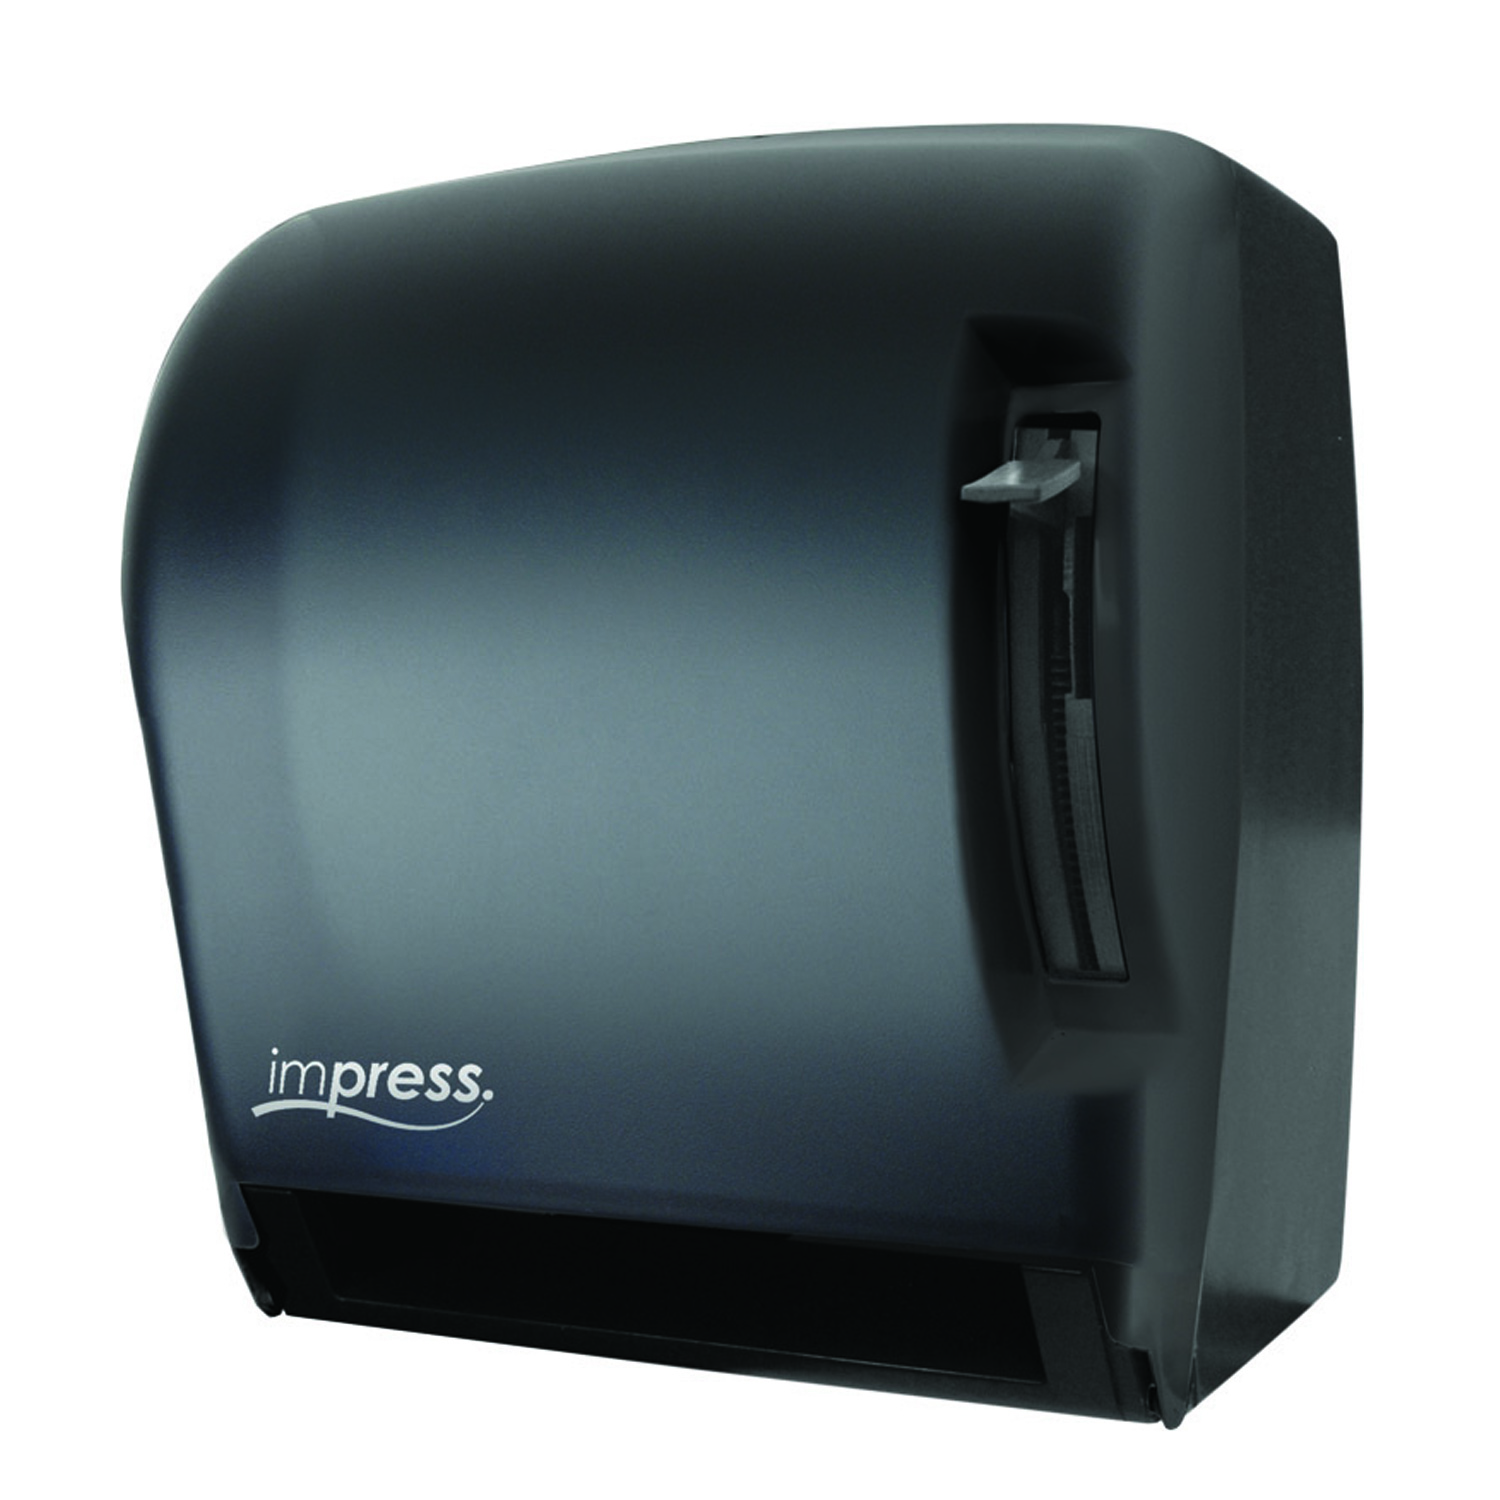 18-TD0220-02 - IMPRESS Lever Roll Towel Dispenser - Black Translucent